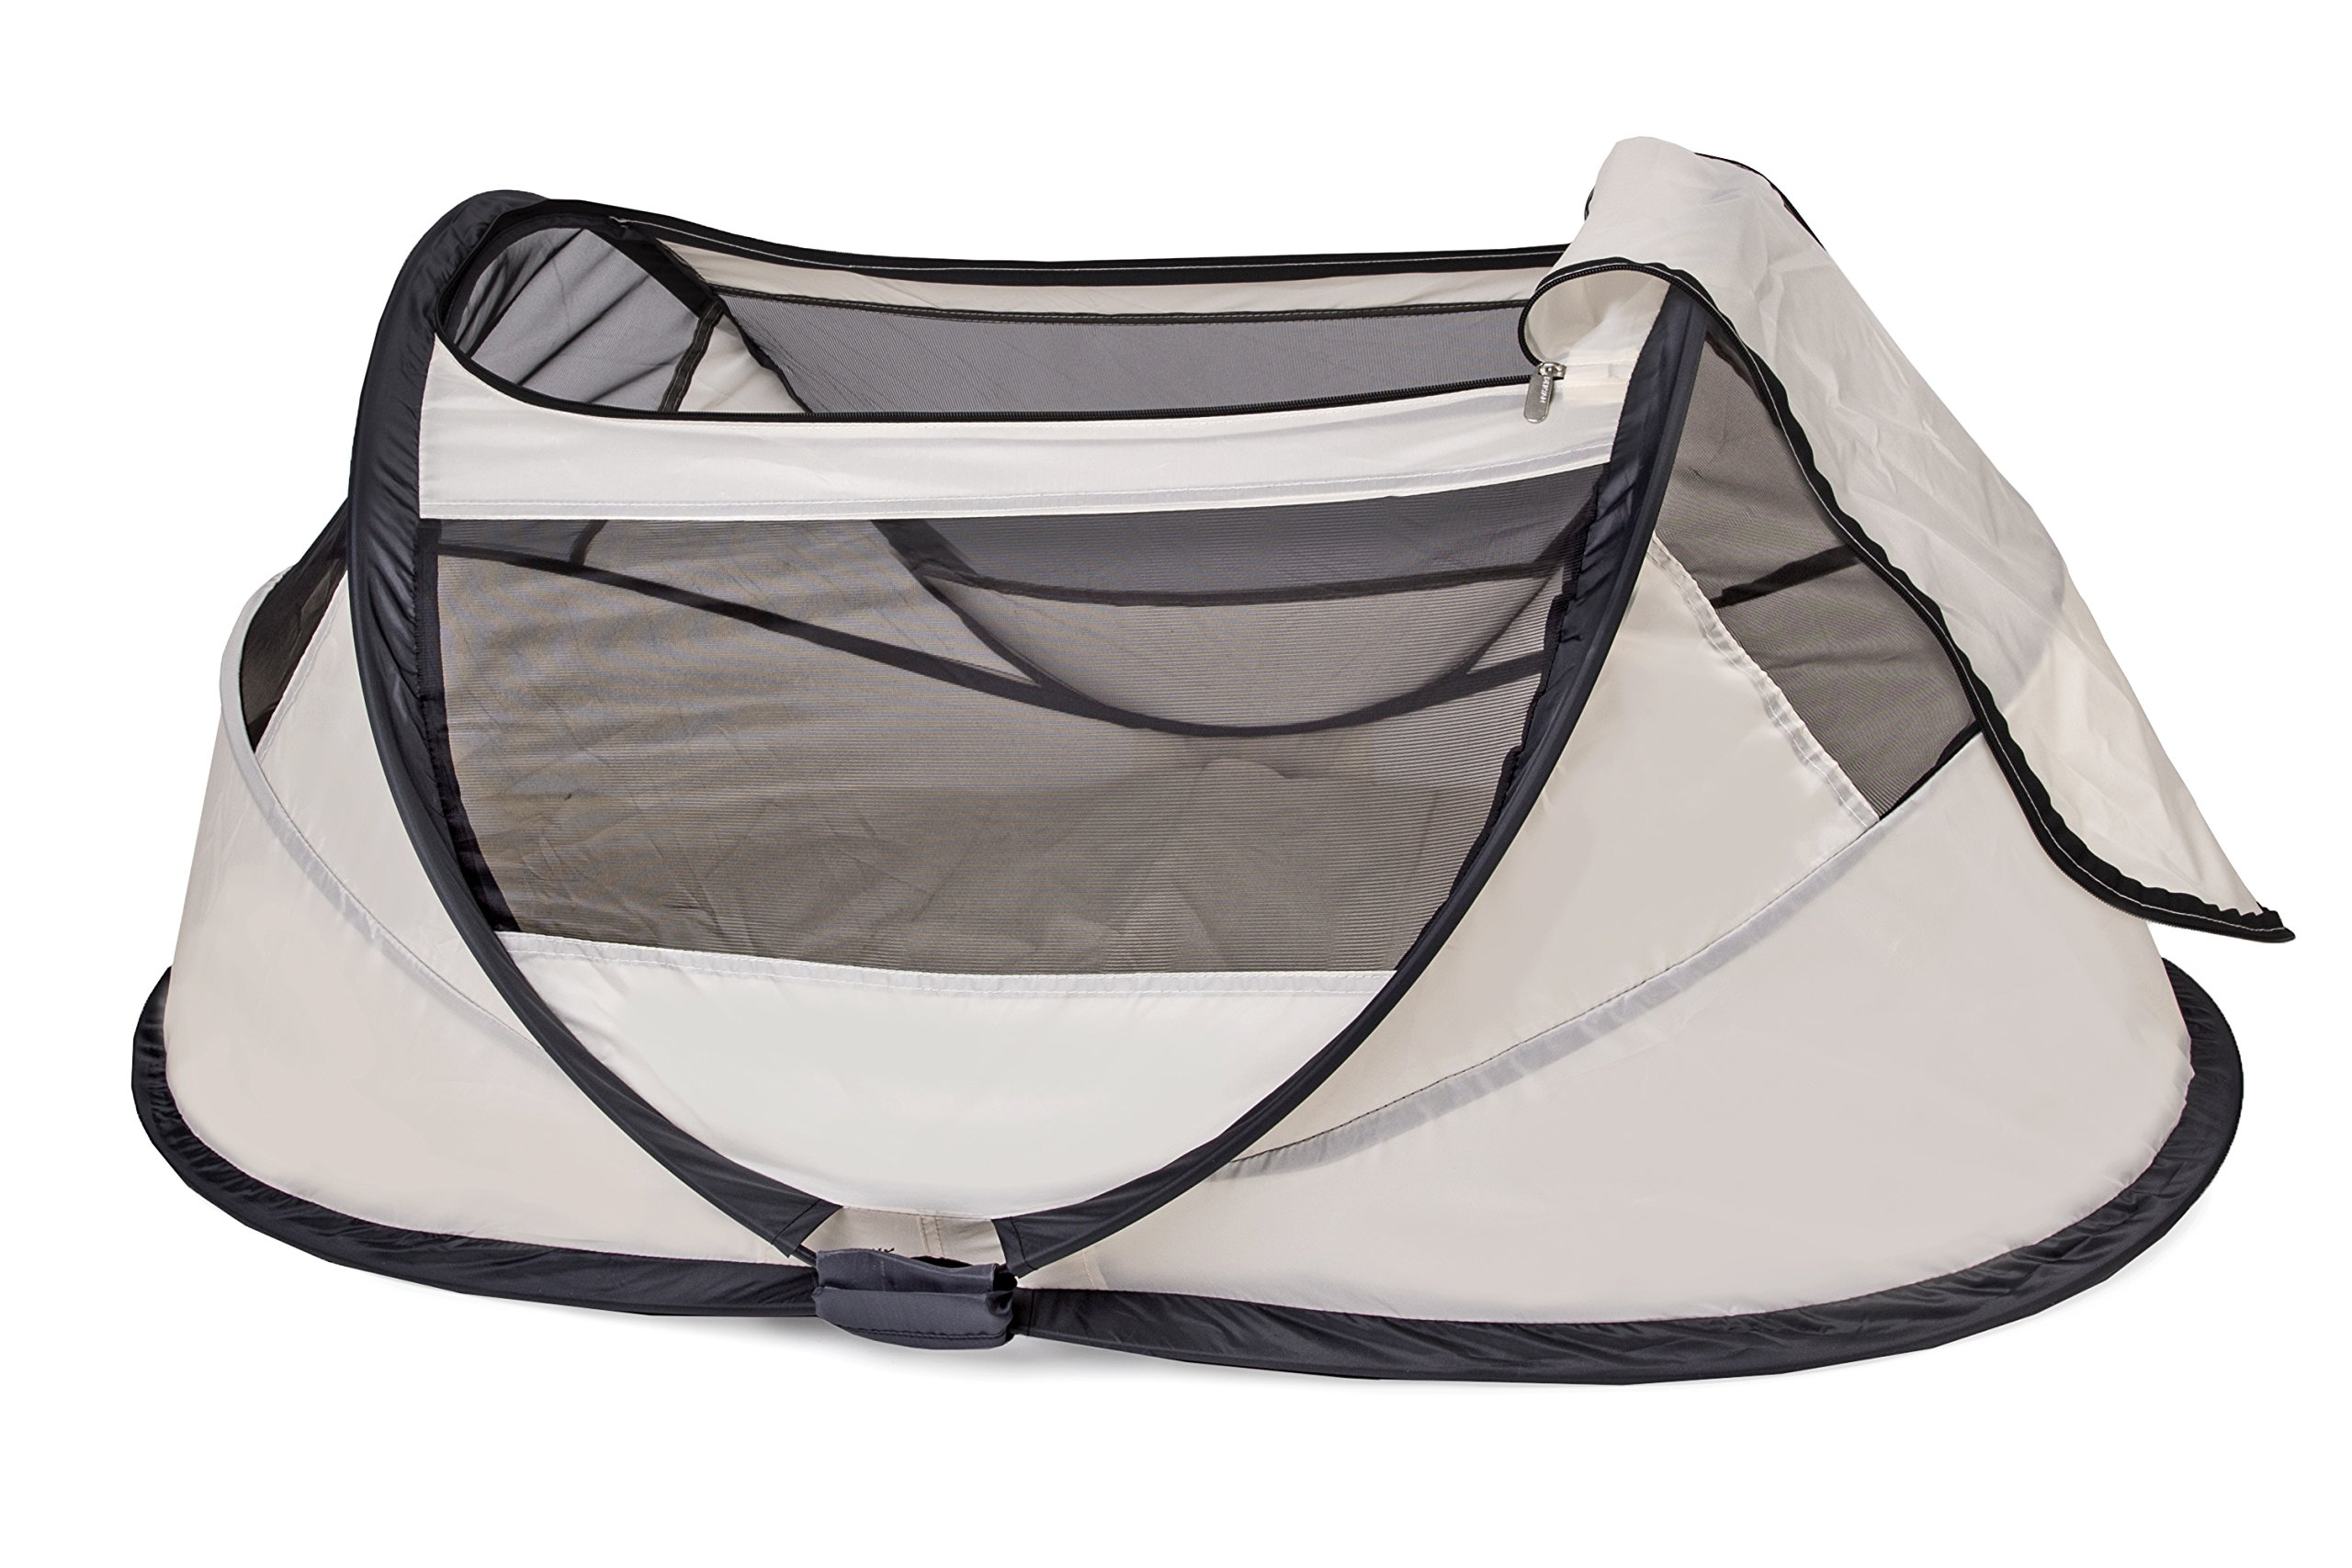 Travel Cot Babybox (Khaki) Deryan 50% UV Protection and flame retardant fabric Setup in 2 seconds and a anti-musquito net  2